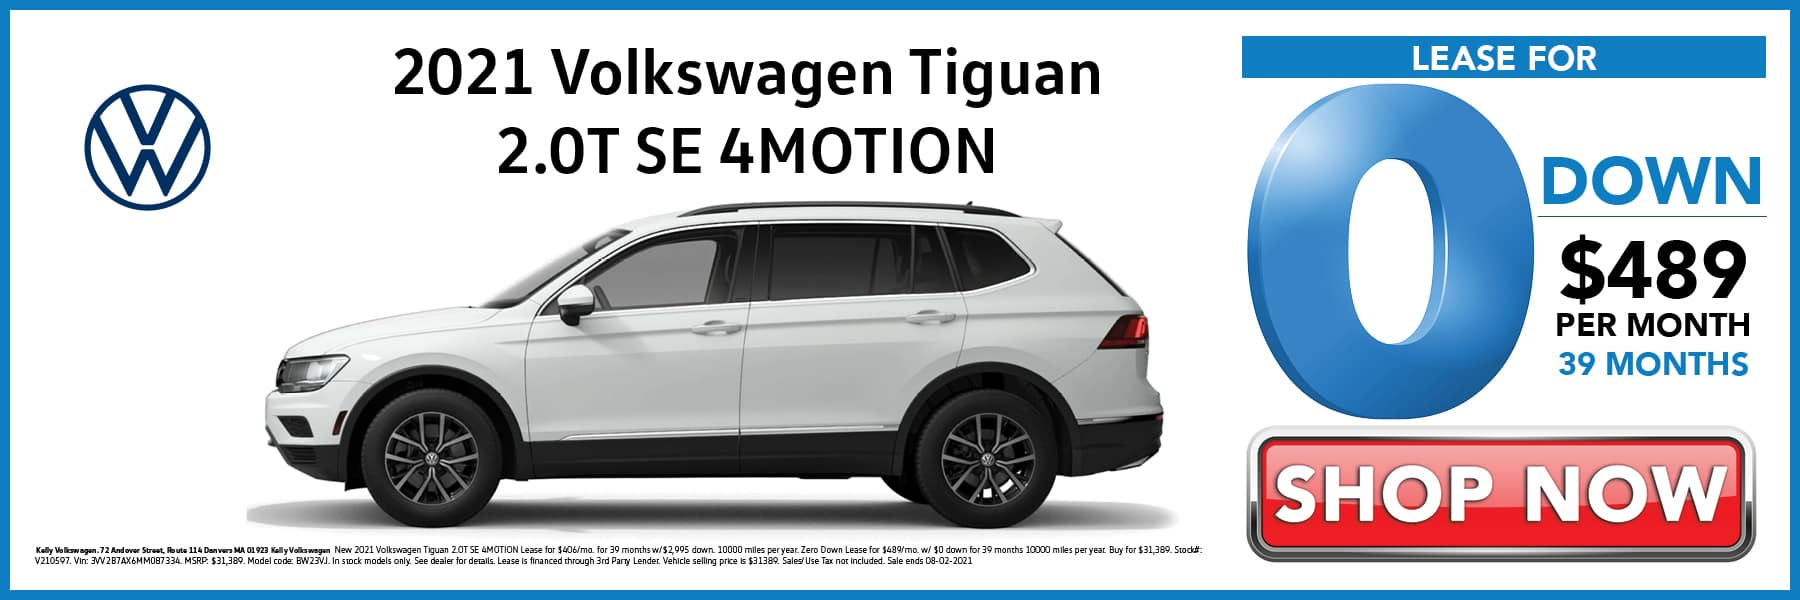 2021 Volkswagen Tiguan SE Lease for 0 Down then $489 per Month for 39 Months